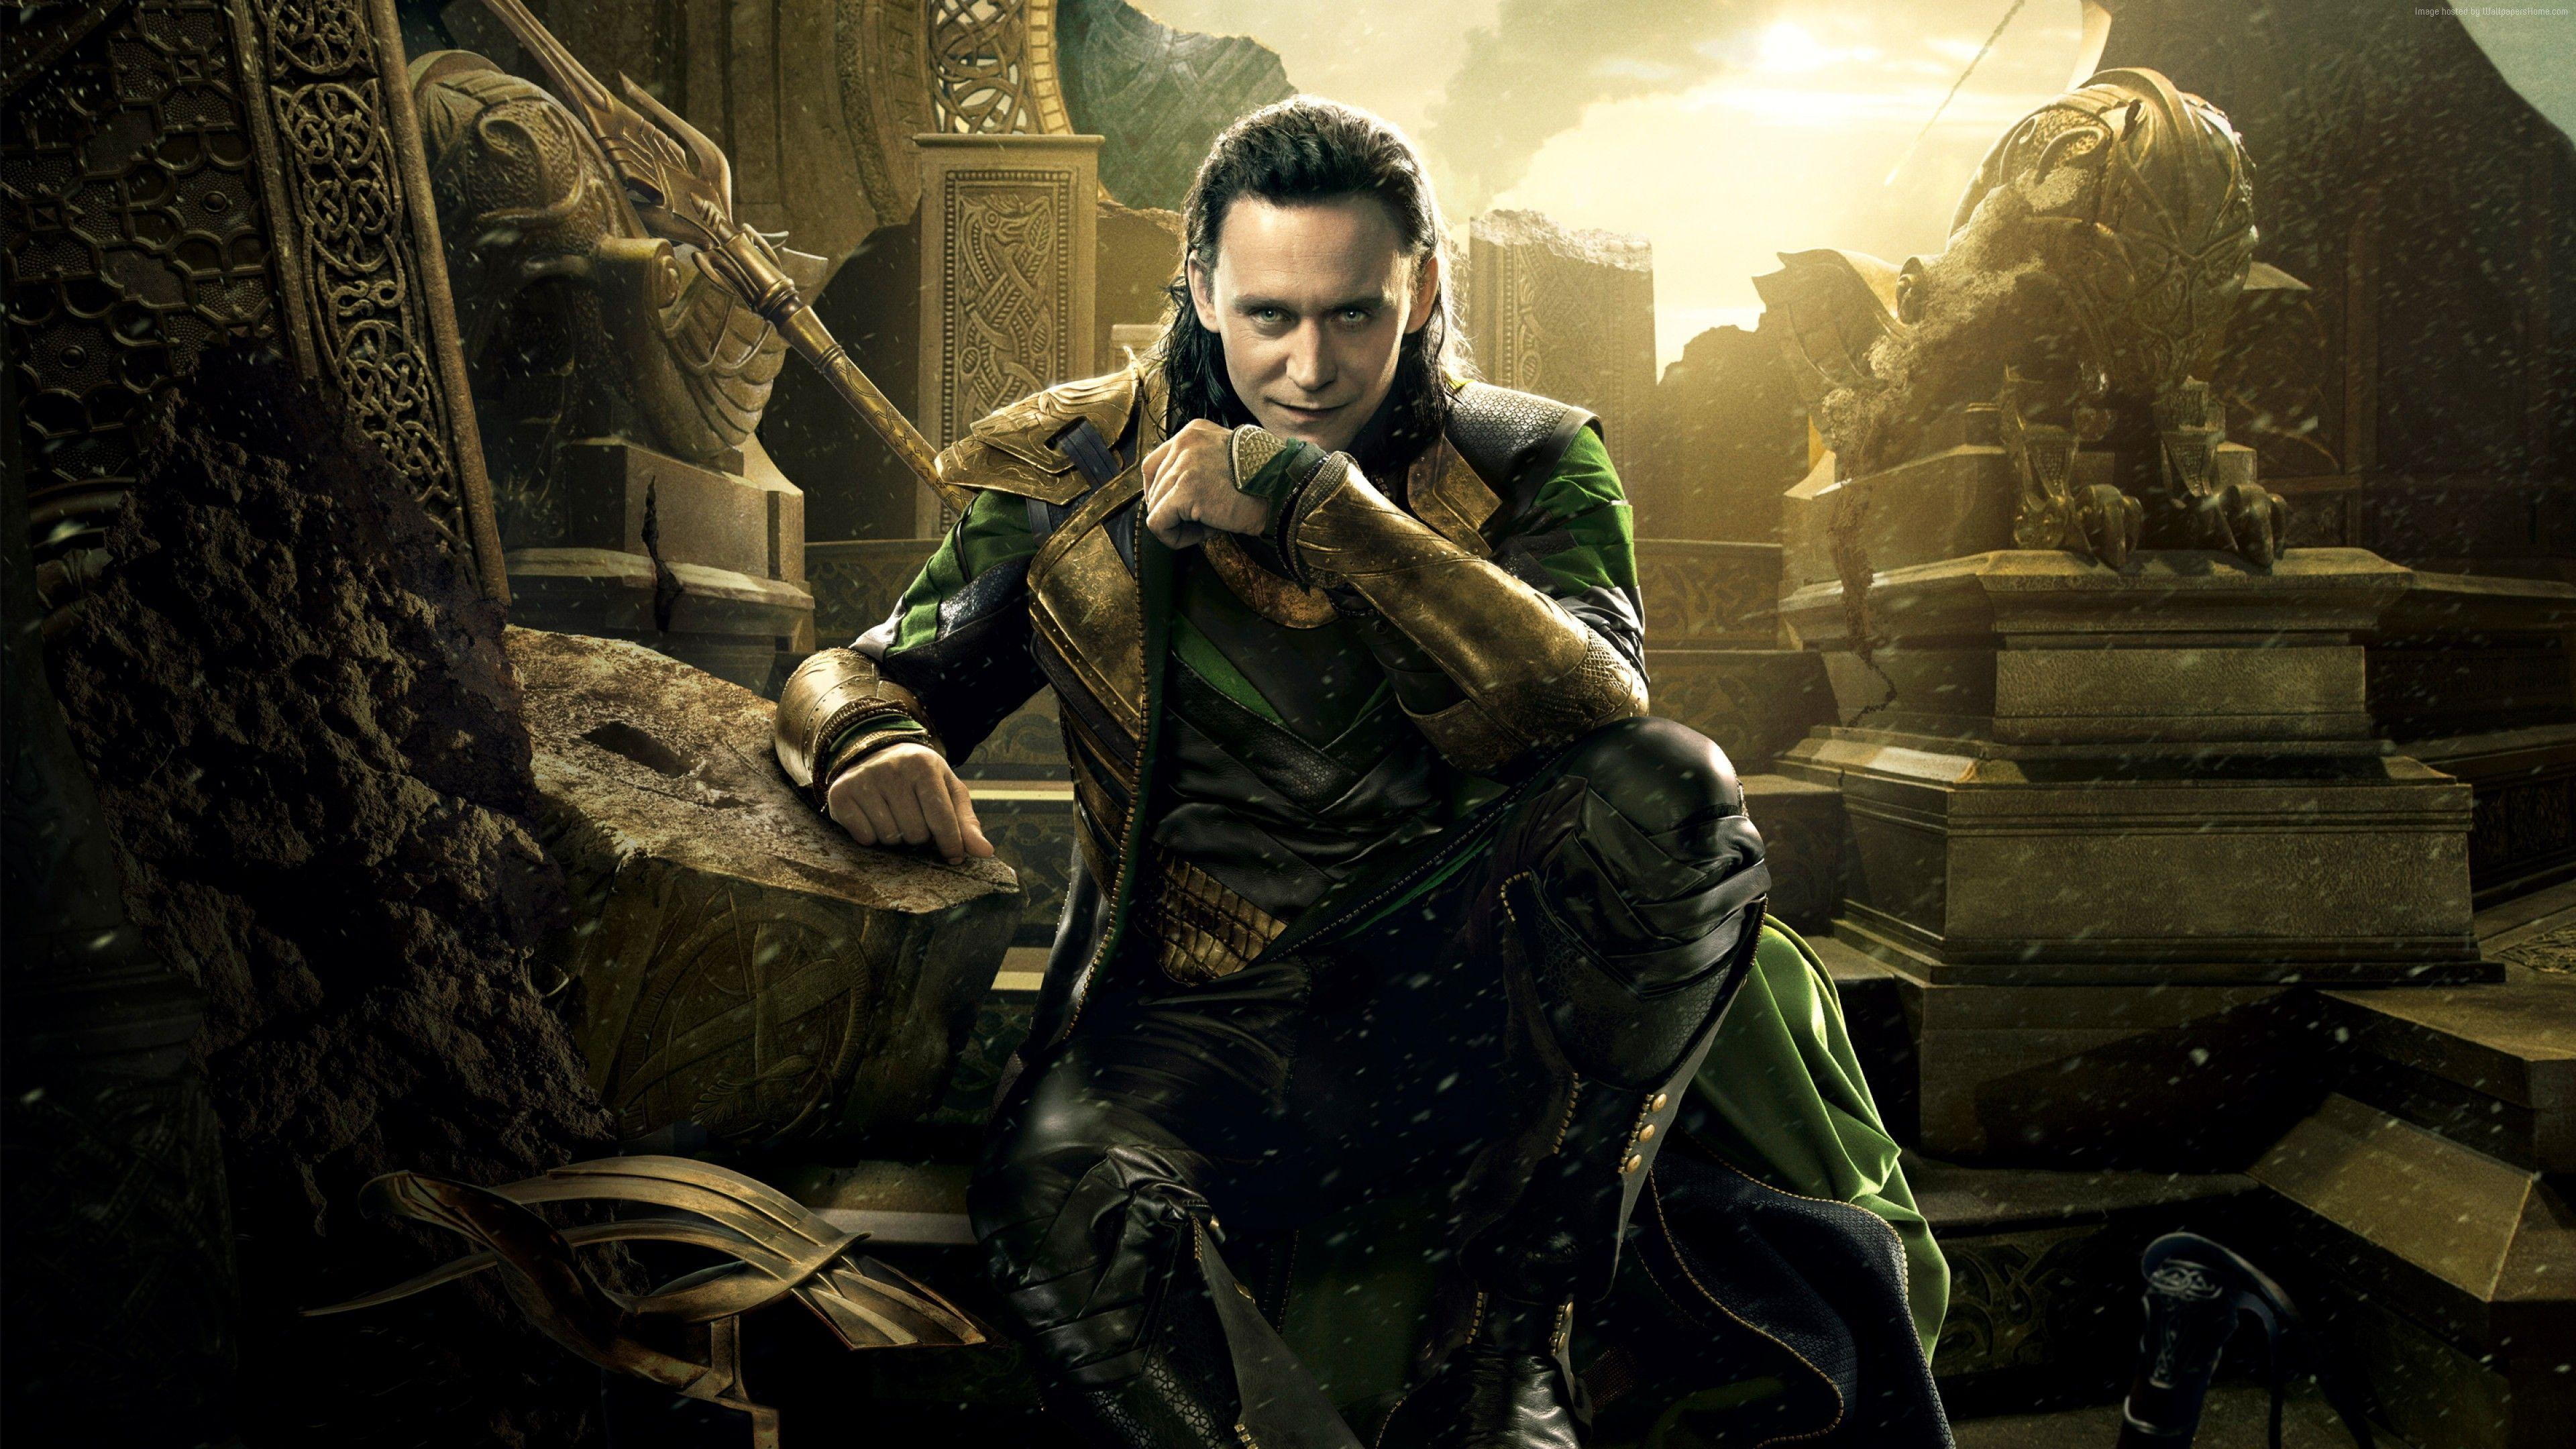 Actor Tom Hiddleston character Loki in the movie Thor. Ragnarok ...